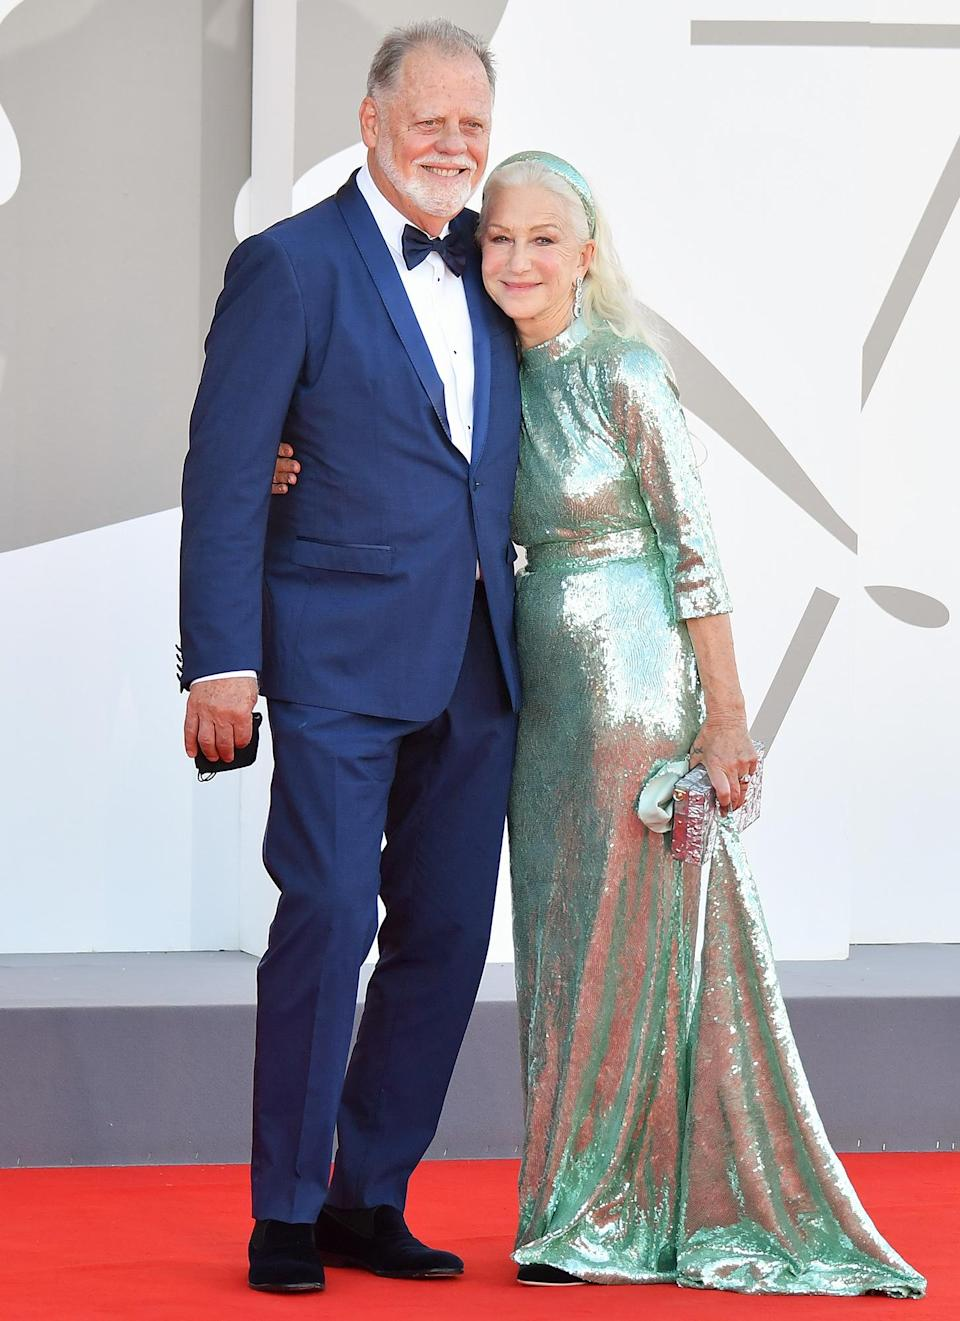 <p>Taylor Hackford and Helen Mirren embrace on the red carpet for the film <em>Madres Paralelas</em> during the 78th Venice International Film Festival on Sept. 1 in Italy.</p>